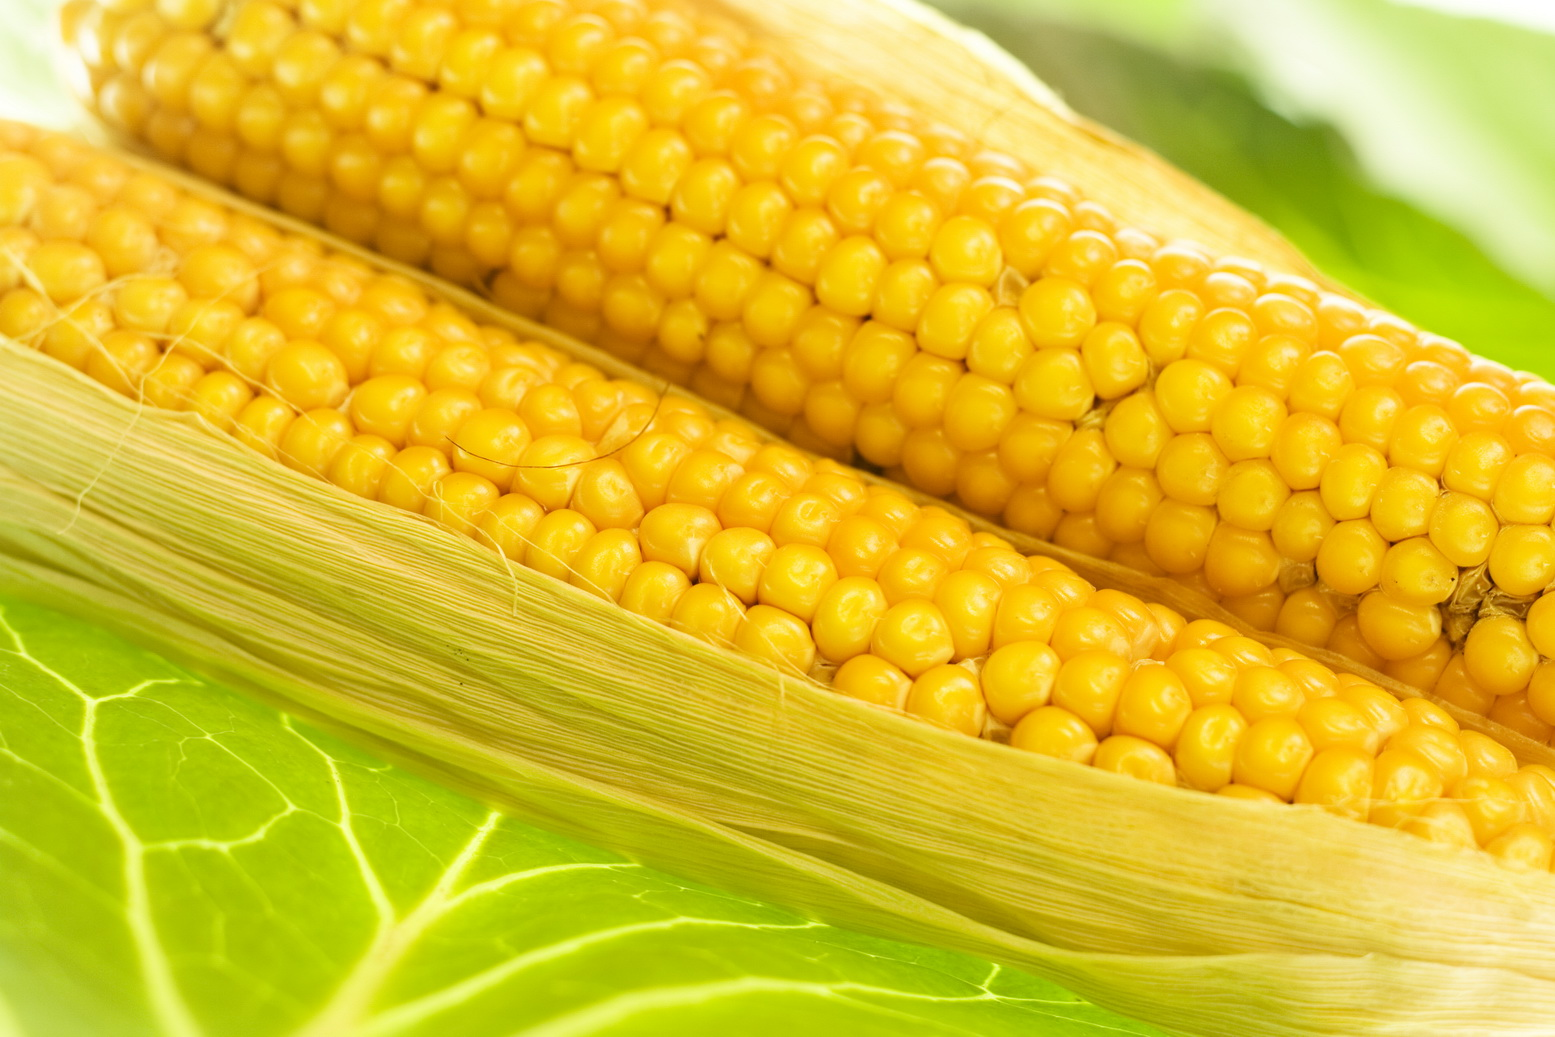 corn, Corn images, Crop, Freshly, Harvested, HQ Photo